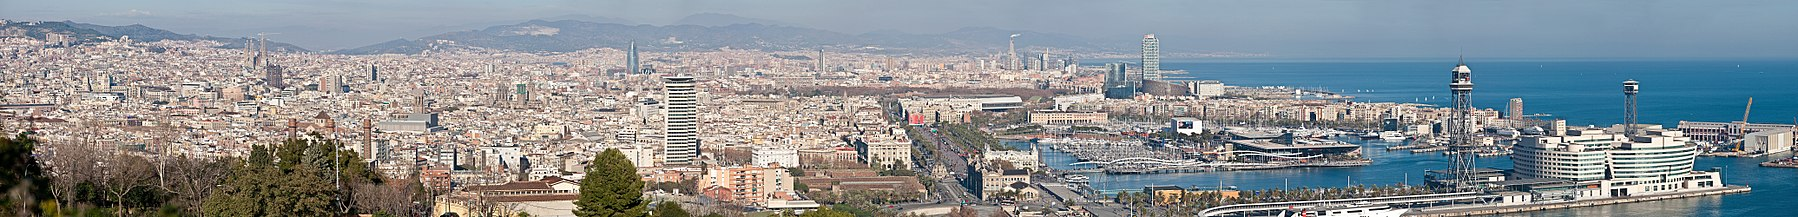 Barcelona Cityscape Panorama - Jan 2007 edit.jpg